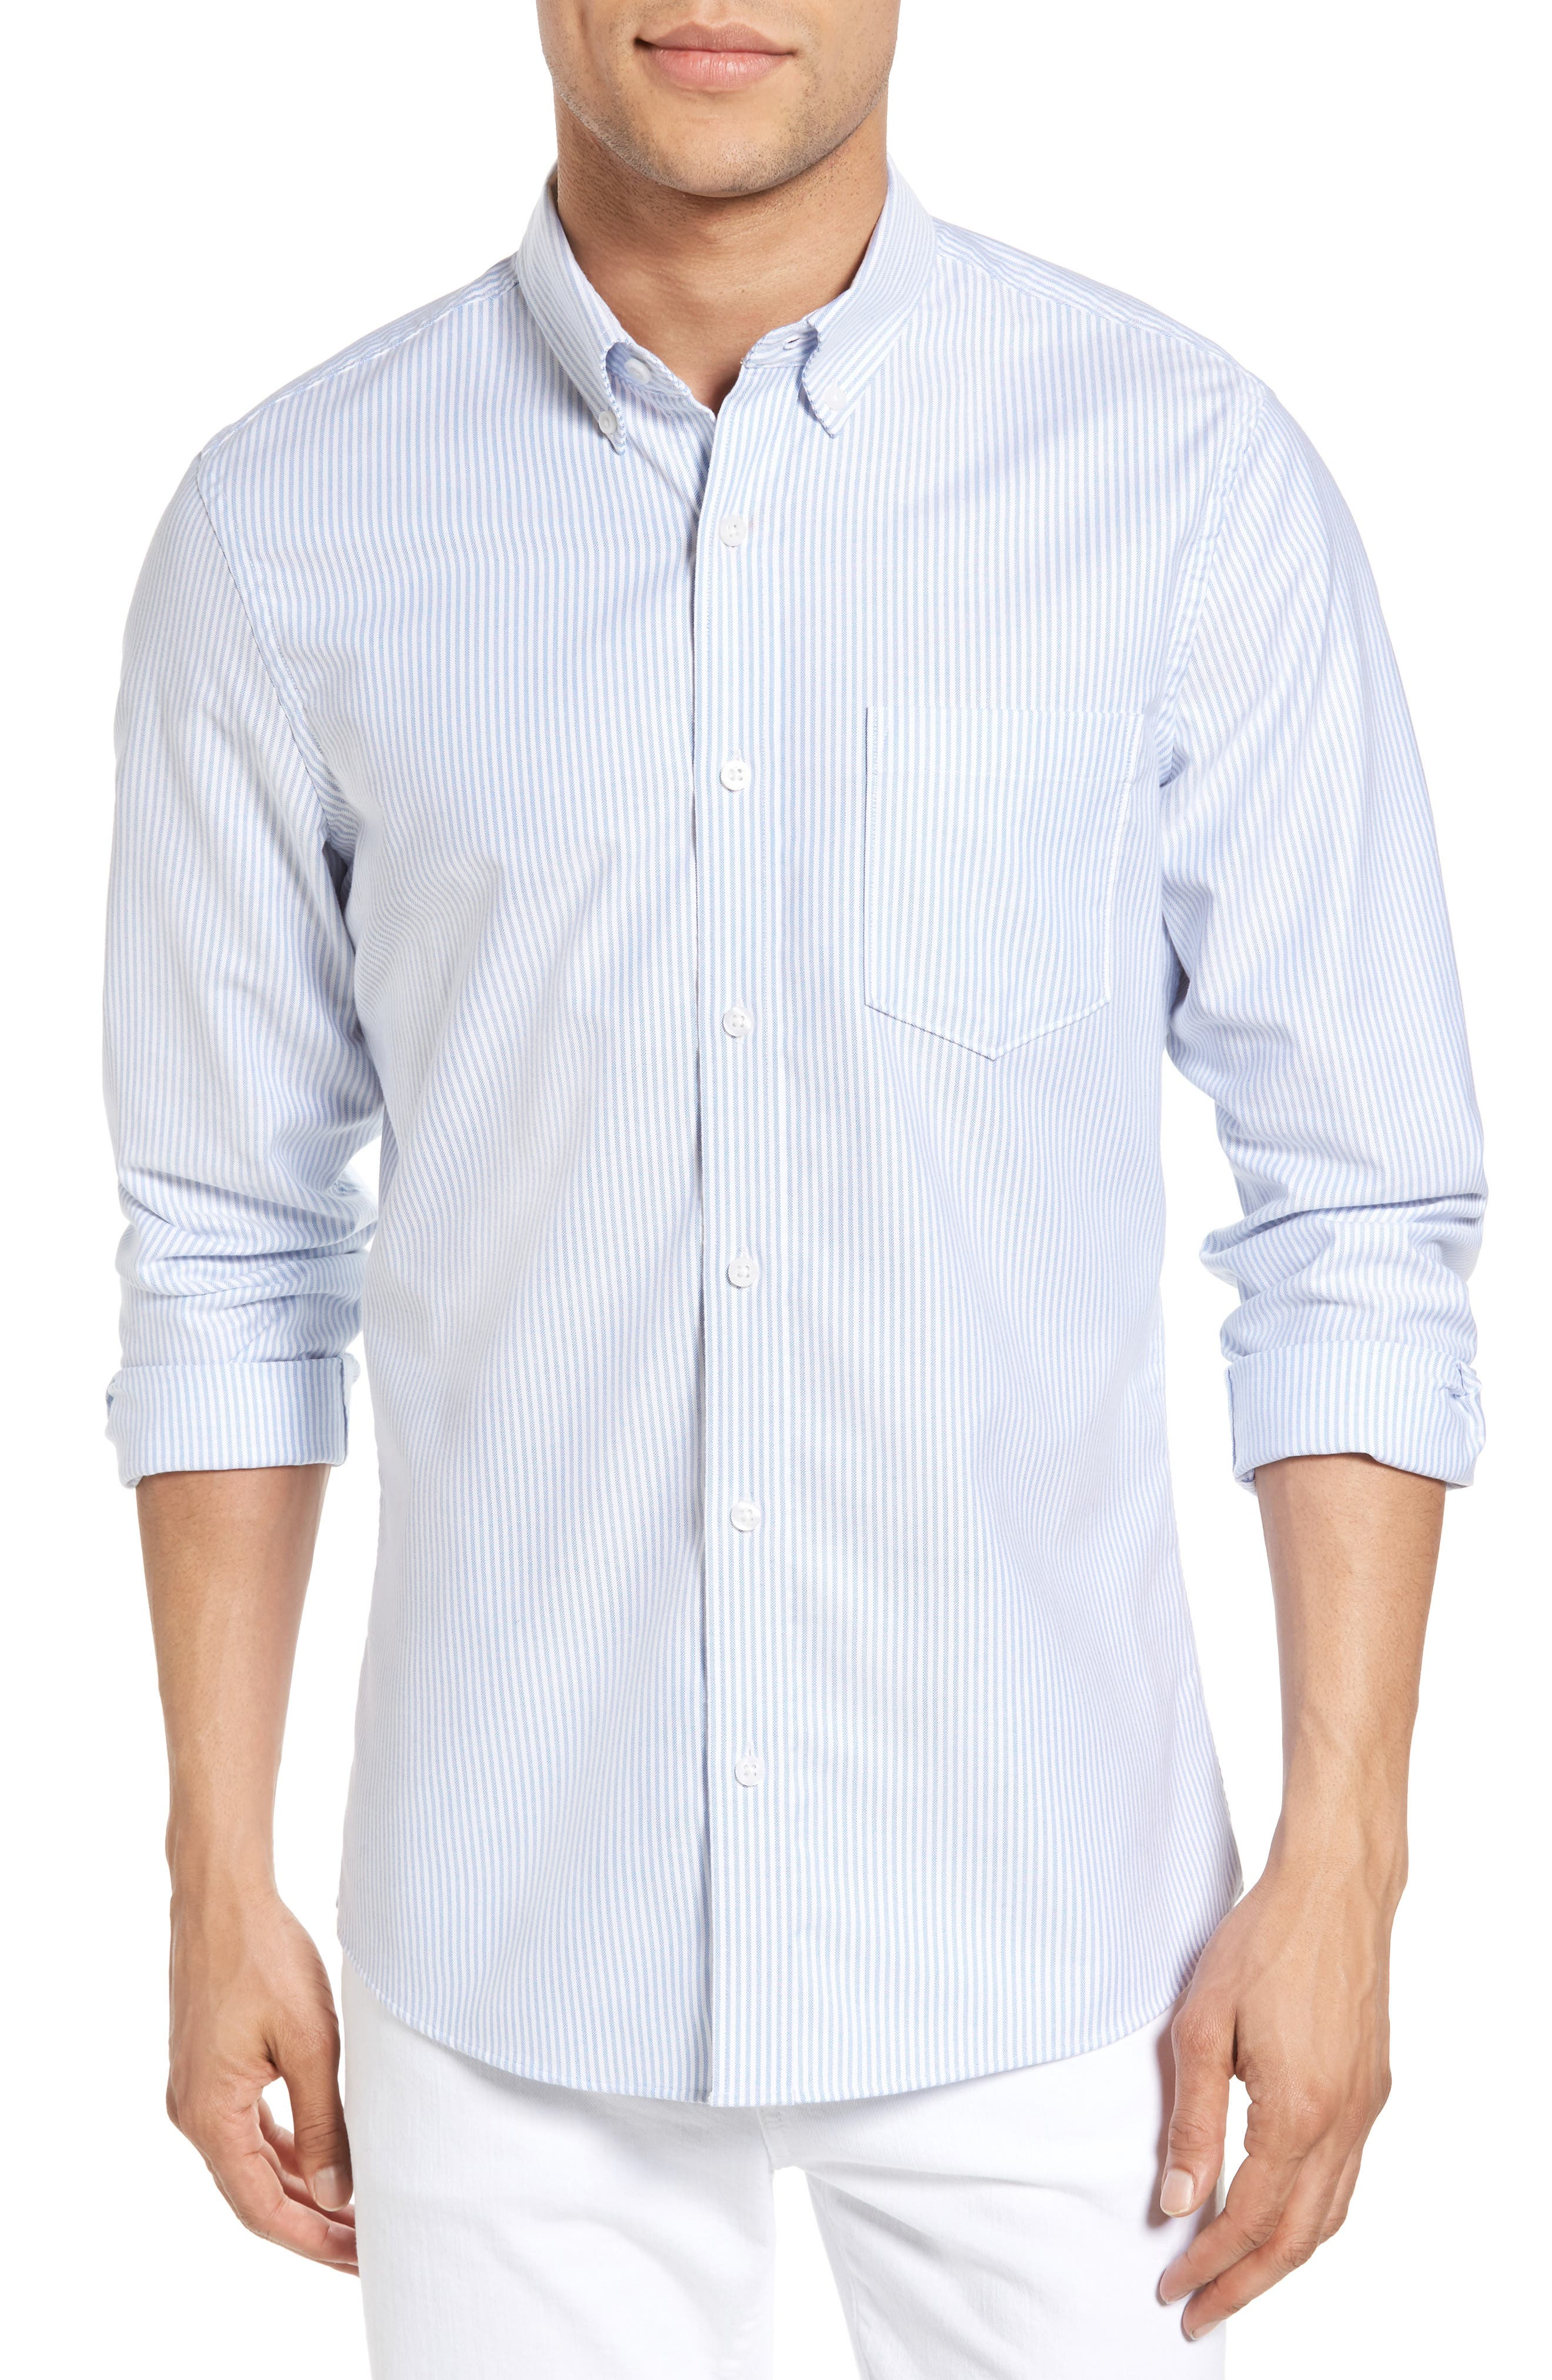 Main Image - 1901 Trim Fit Bengal Stripe Sport Shirt